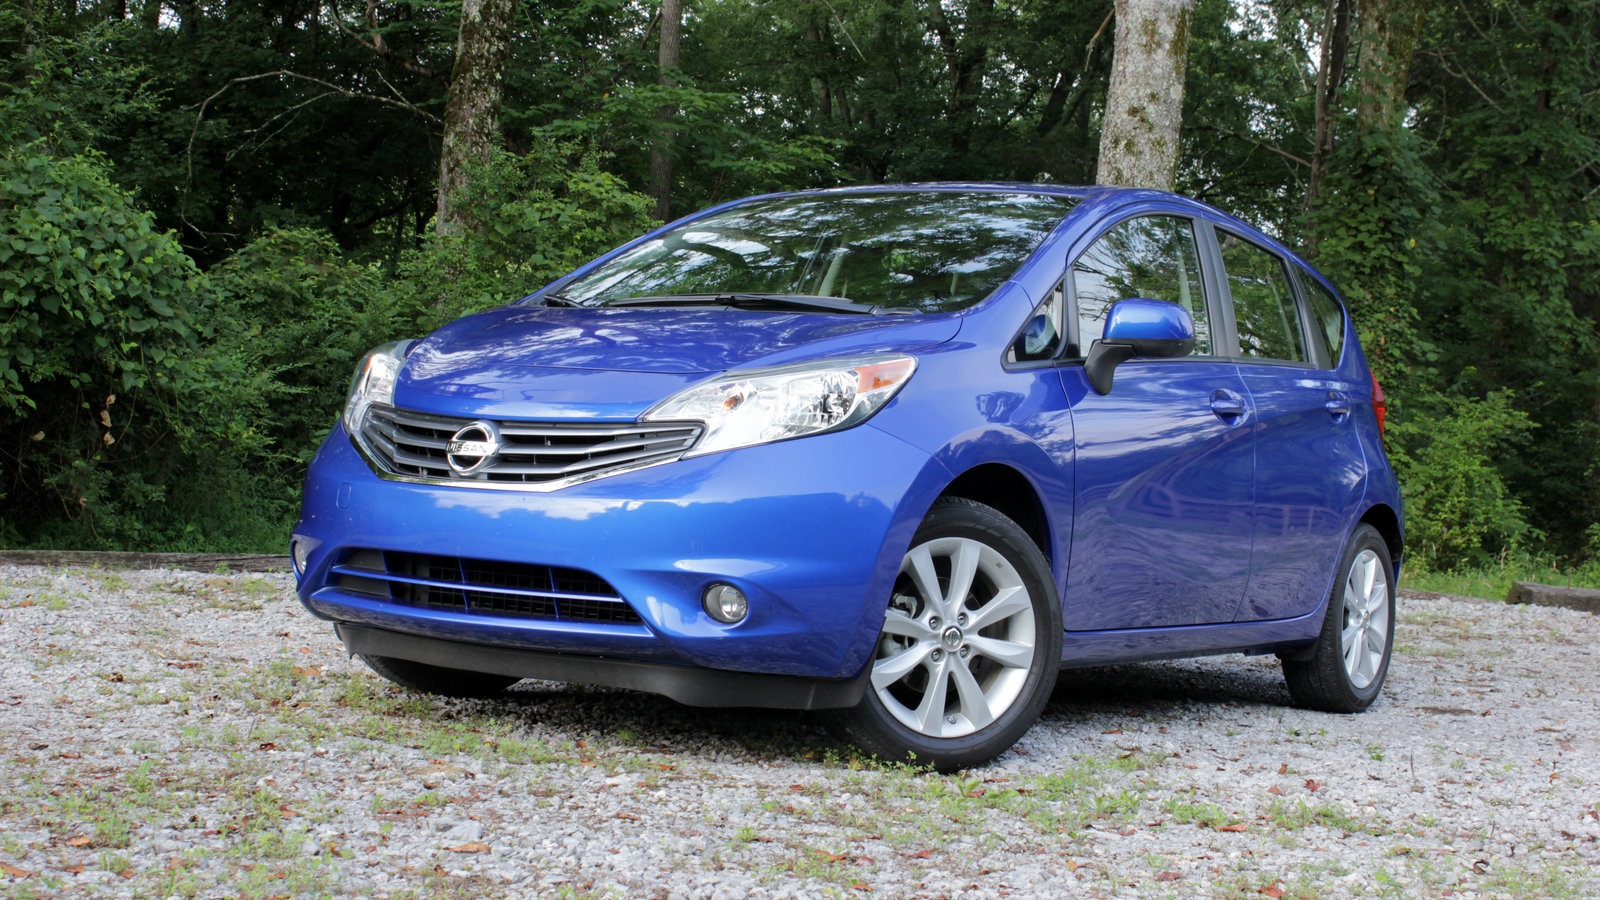 2014 nissan versa note review driven review top speed. Black Bedroom Furniture Sets. Home Design Ideas